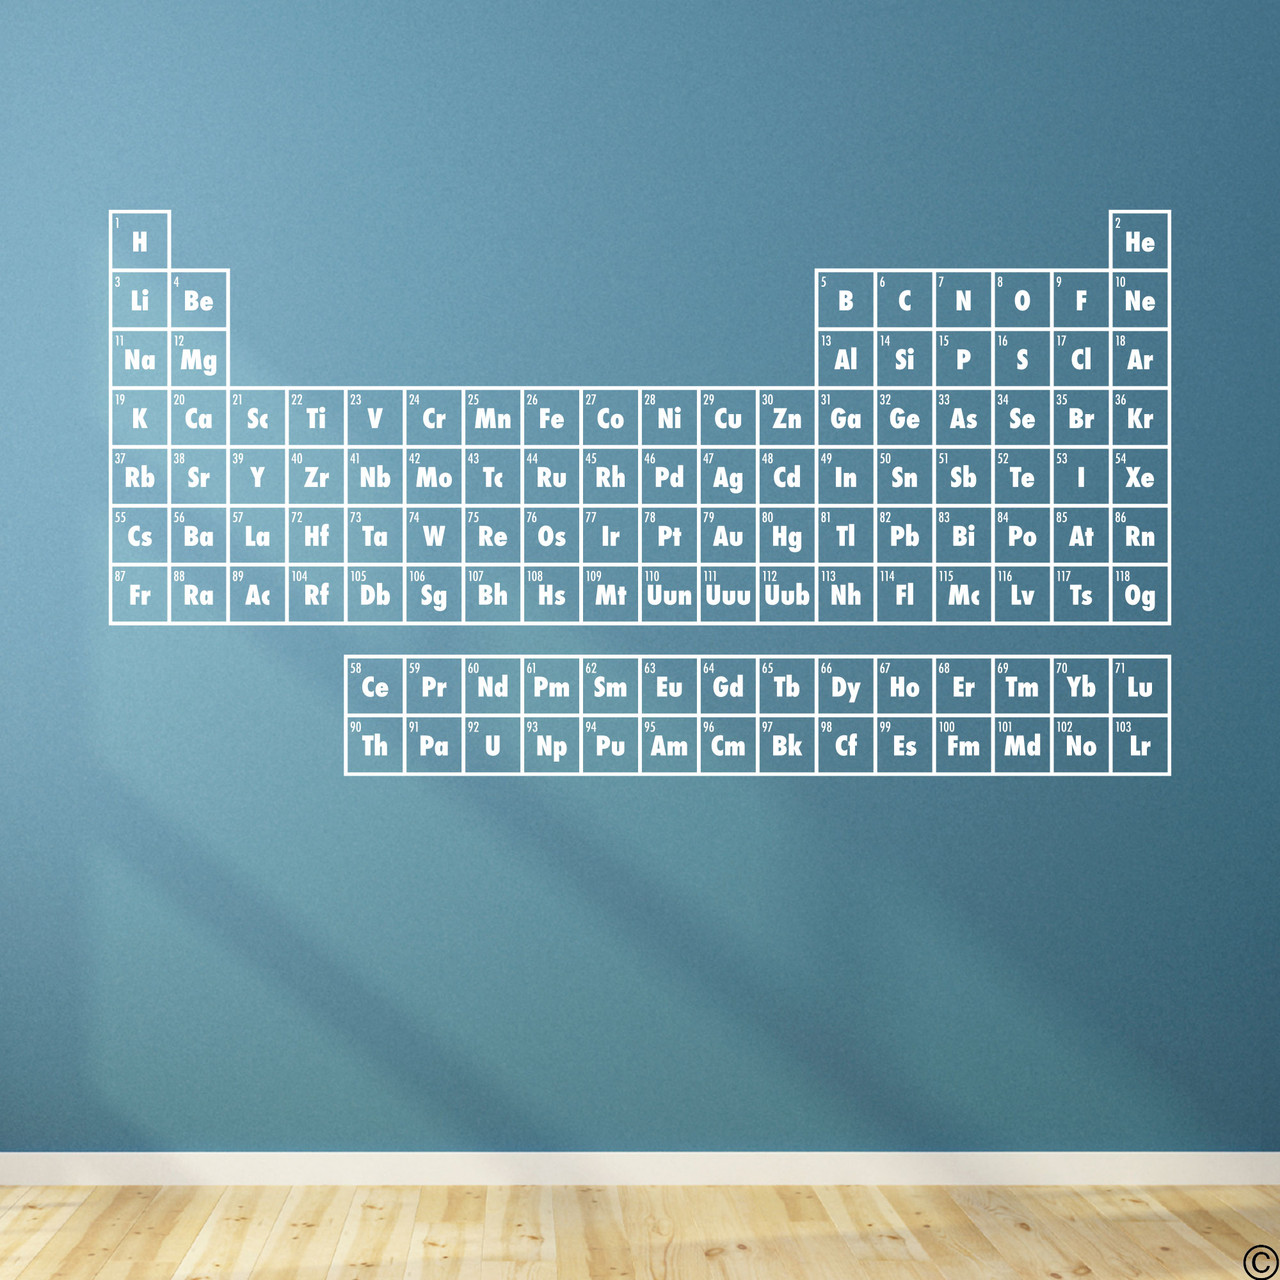 The Periodic Table of Elements wall decal shown here in white vinyl.